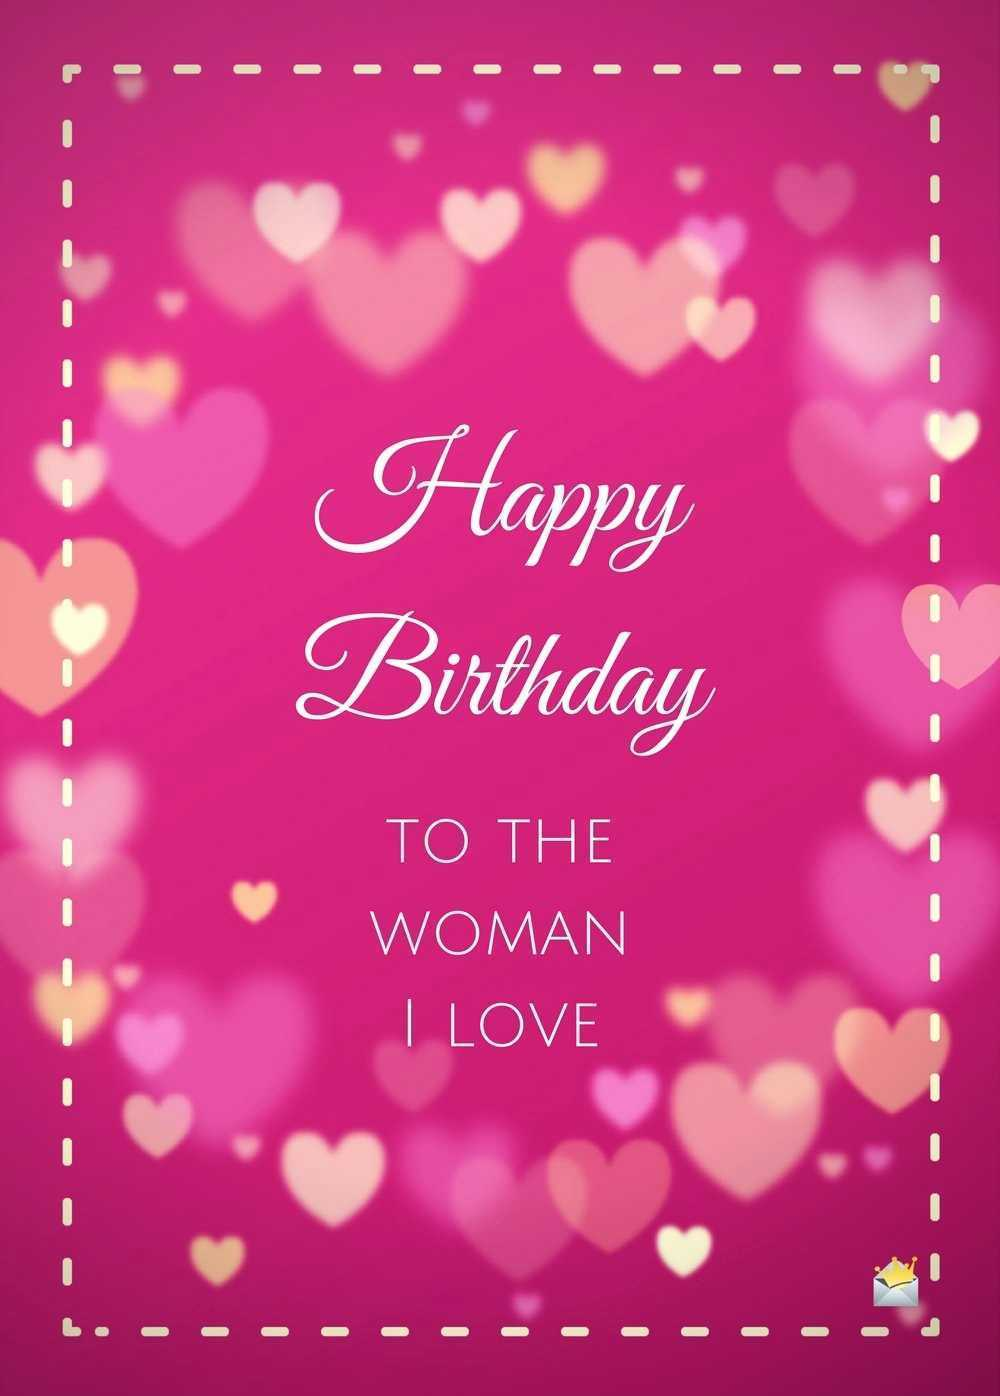 happy birthday pictures for a woman ; happy-birthday-images-for-women-awesome-200-cute-birthday-messages-to-make-them-smile-of-happy-birthday-images-for-women